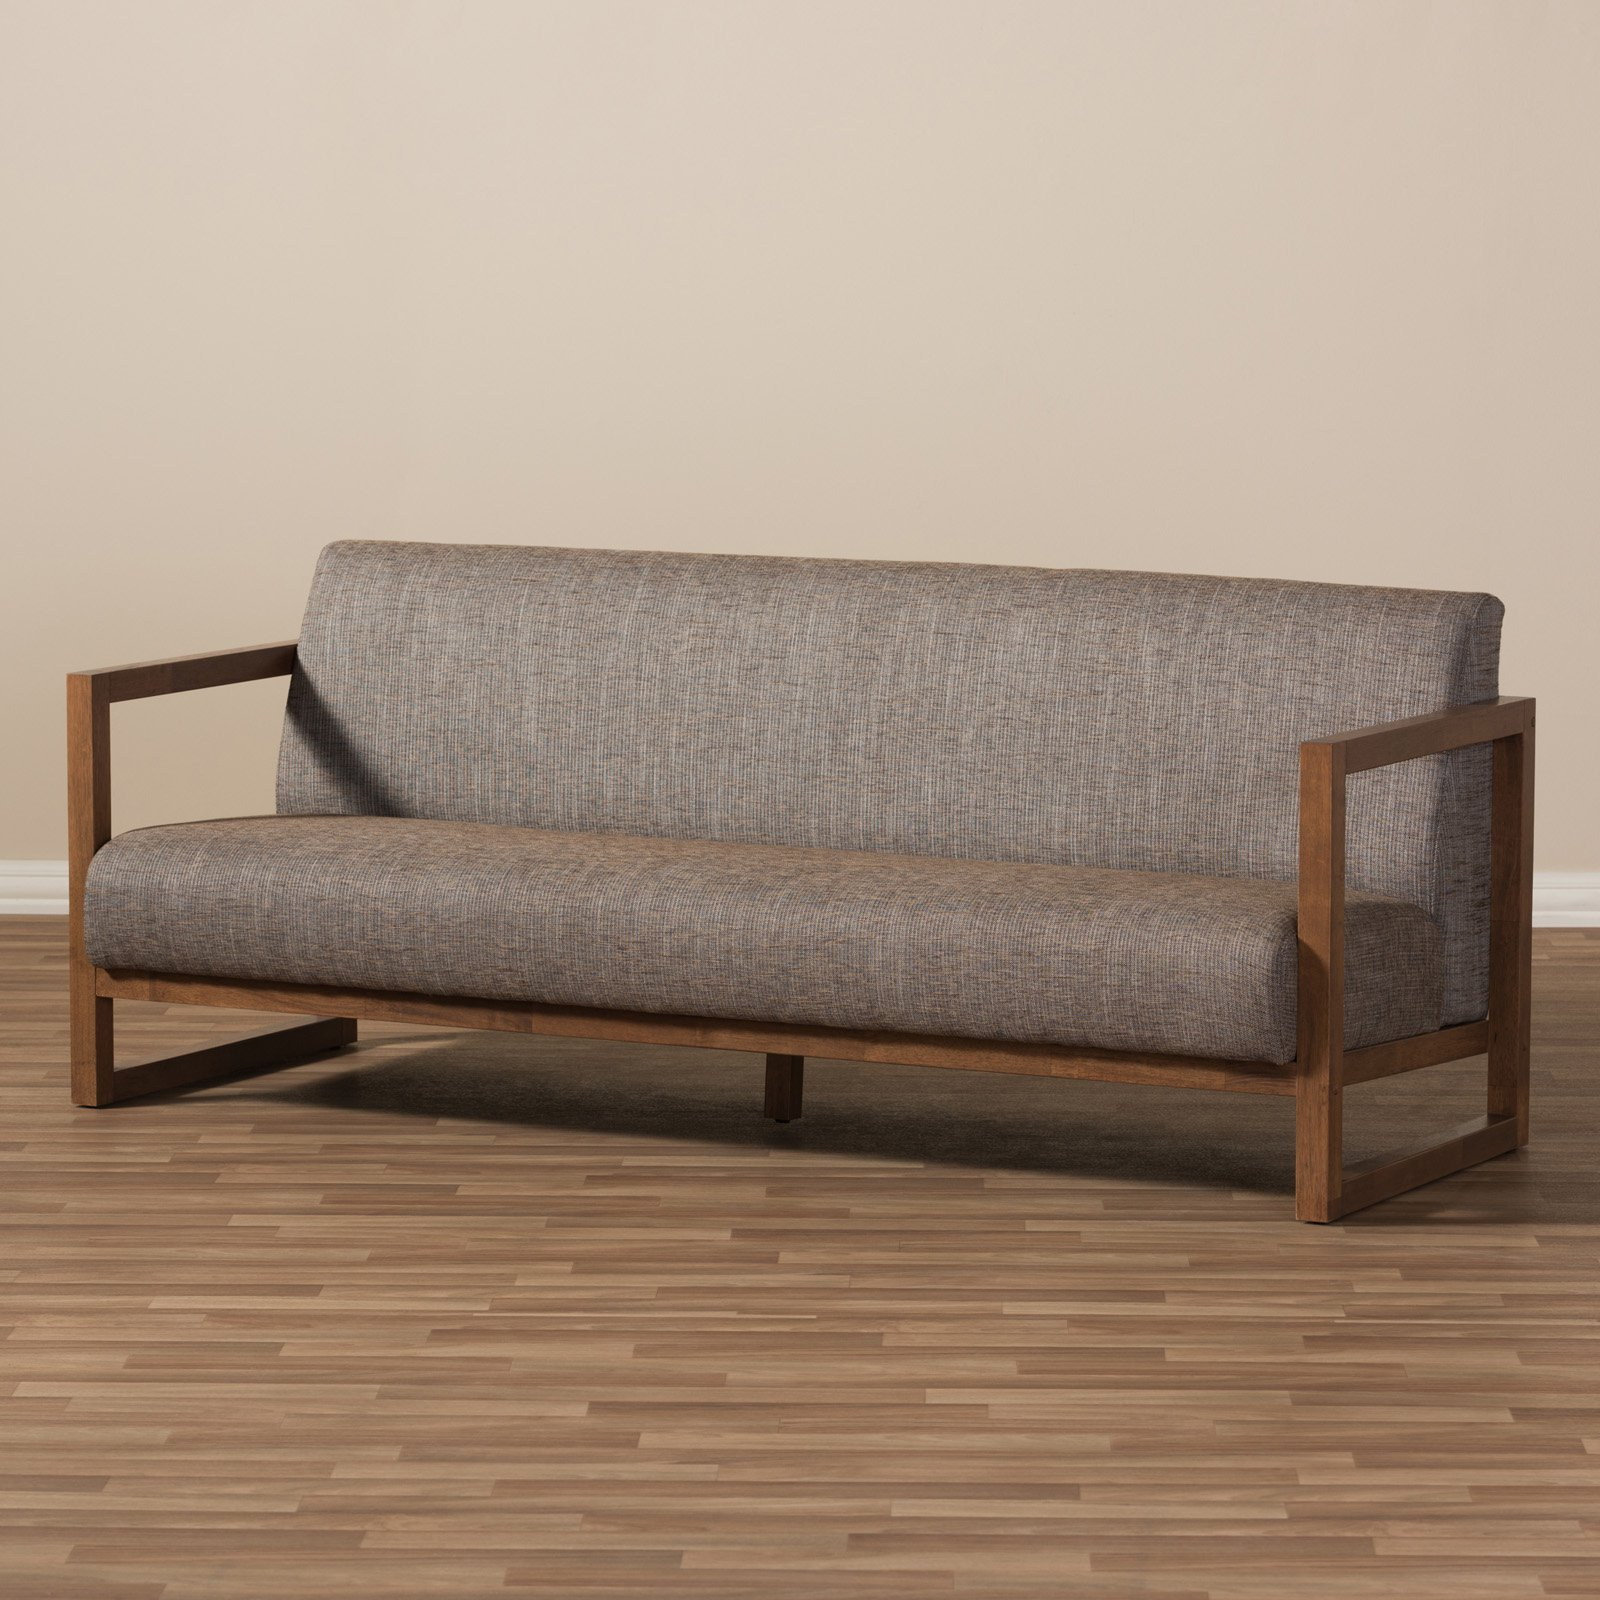 Sofa Fabric Baxton Studio Valencia Mid Century Modern Walnut Wood Finished Gravel Fabric Upholstered 3 Seater Sofa